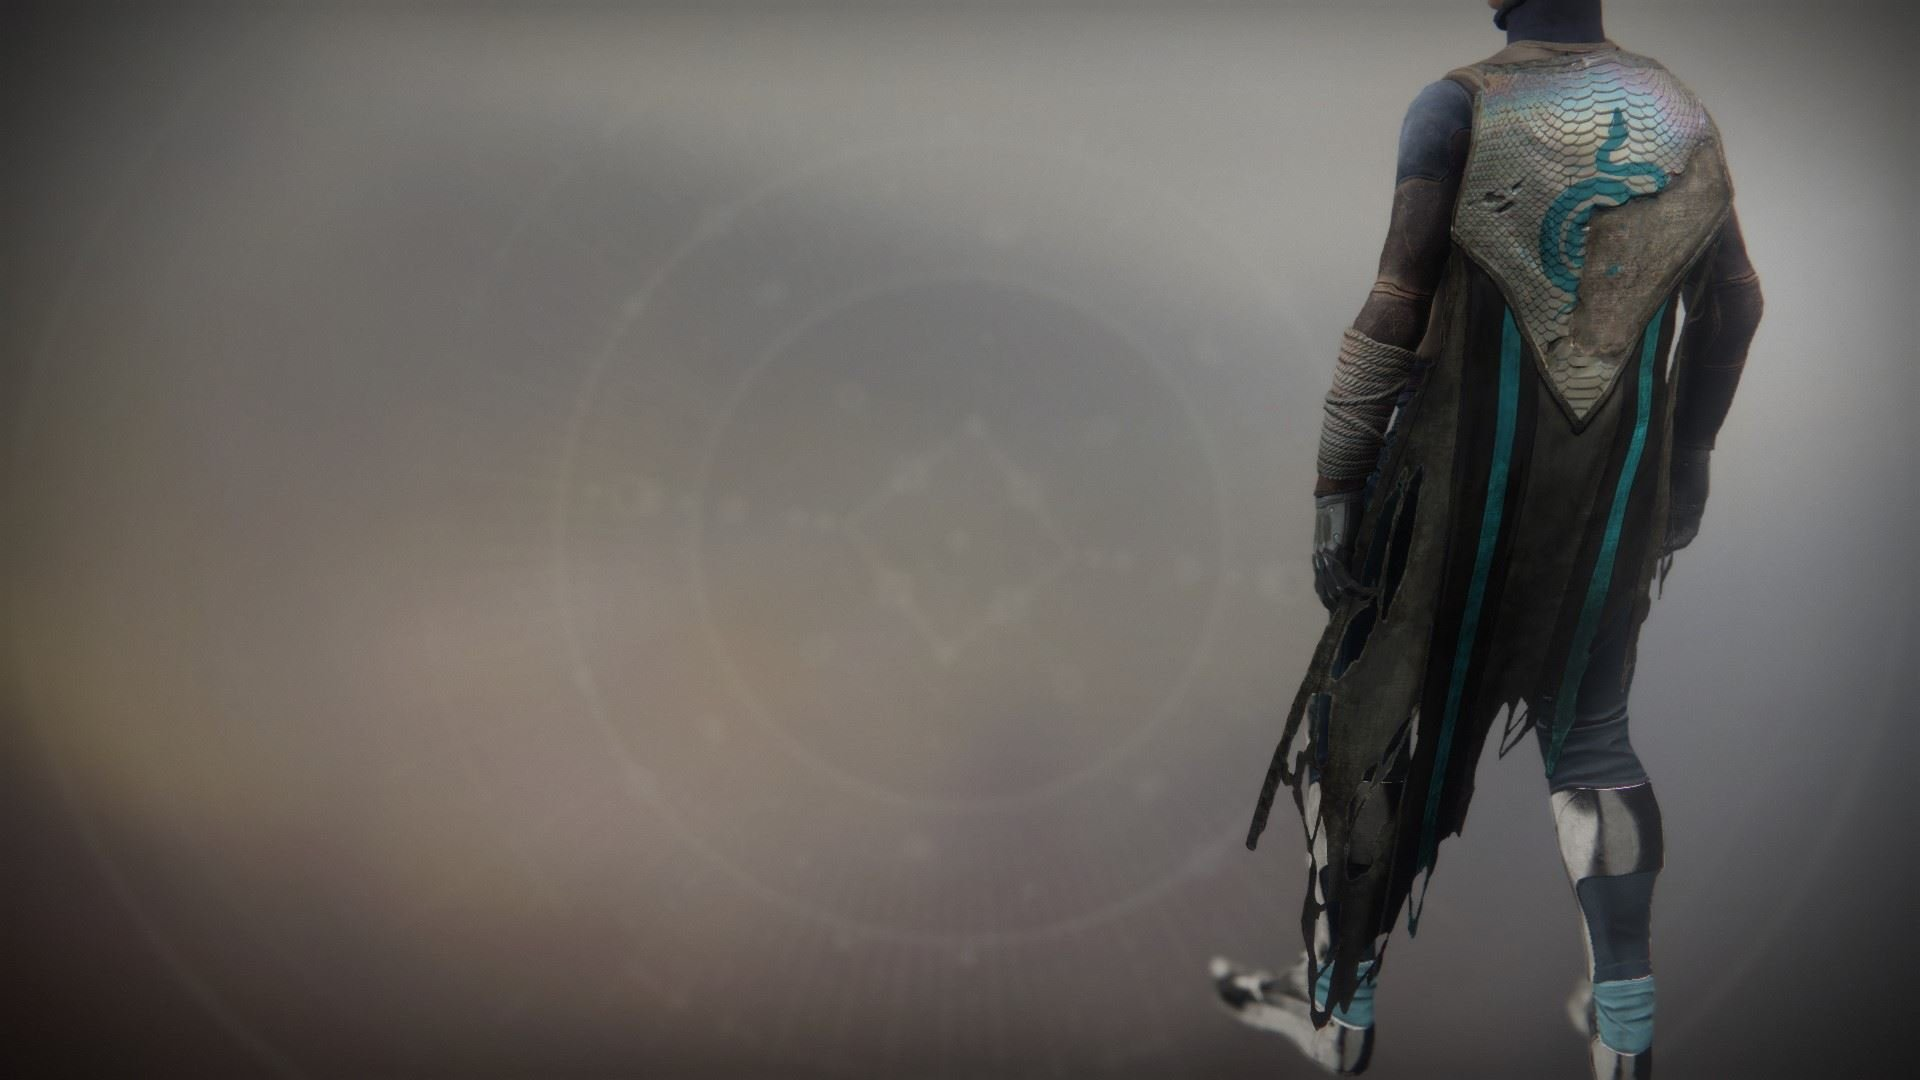 An in-game render of the Solstice Cloak (Scorched).